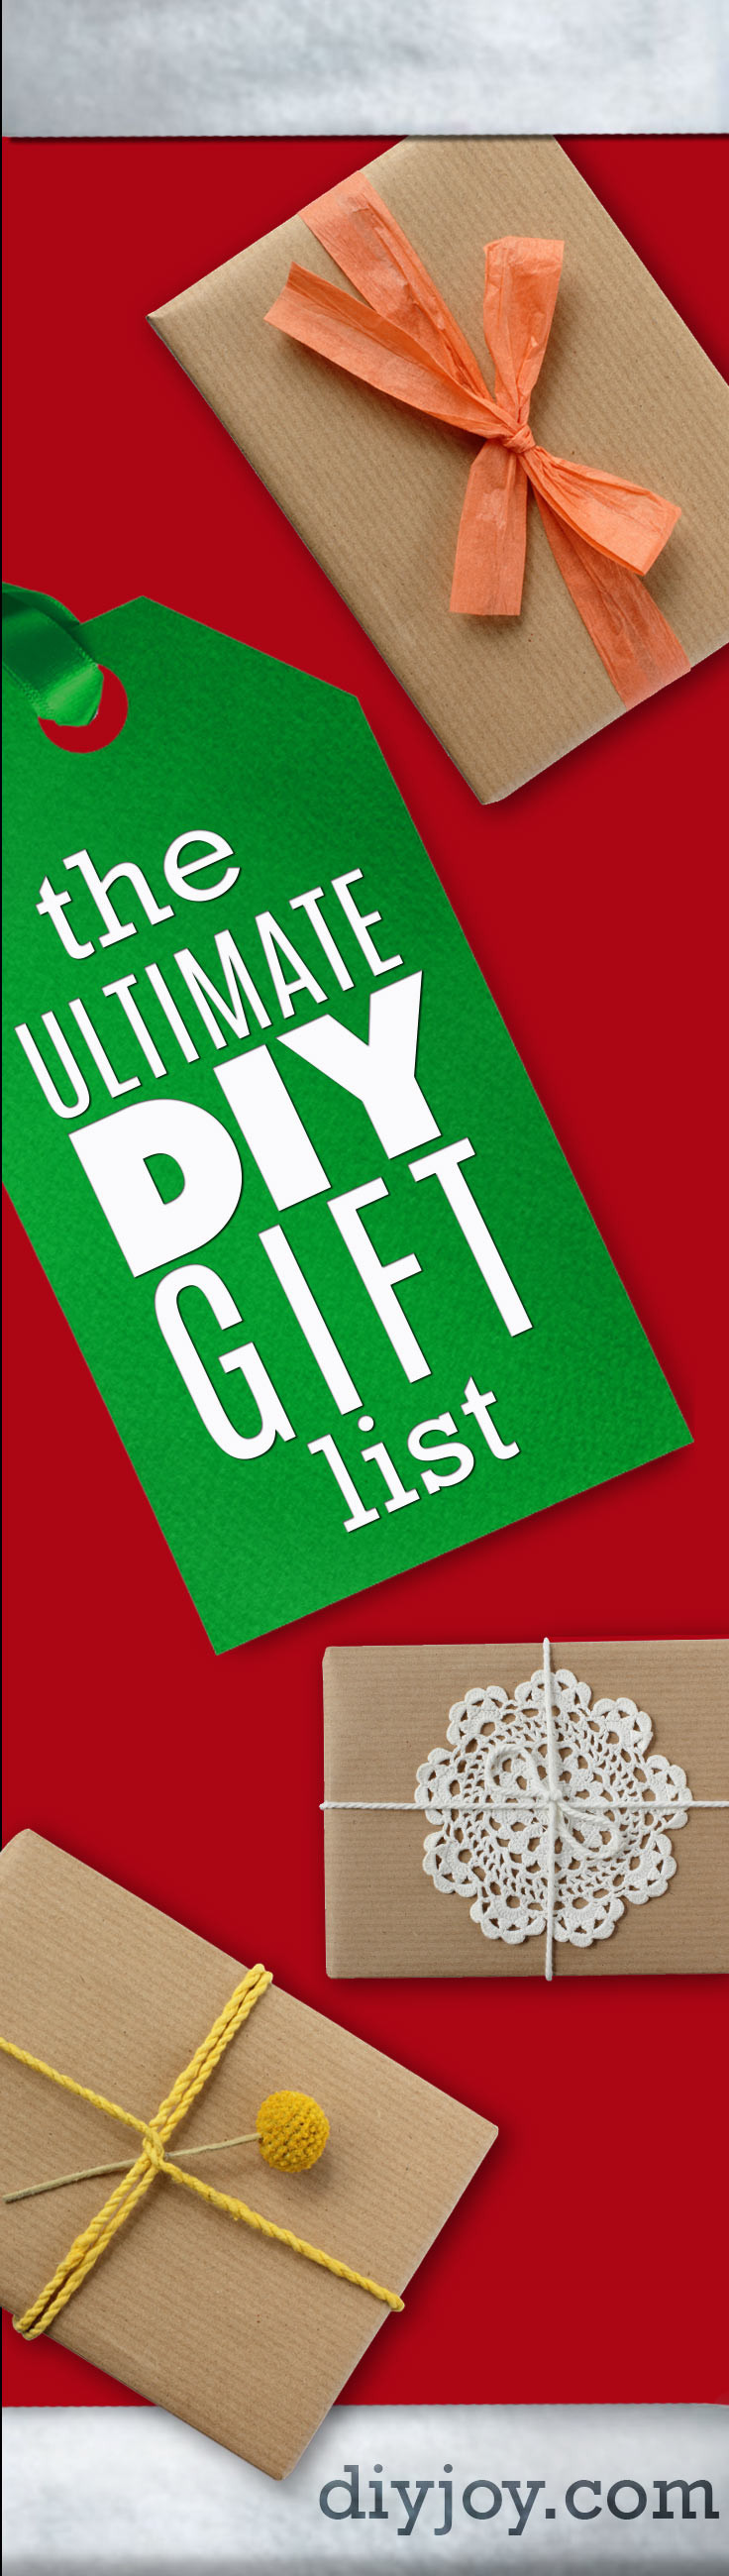 Best ideas about DIY Boyfriend Christmas Gifts . Save or Pin The Ultimate DIY Christmas Gifts list Now.